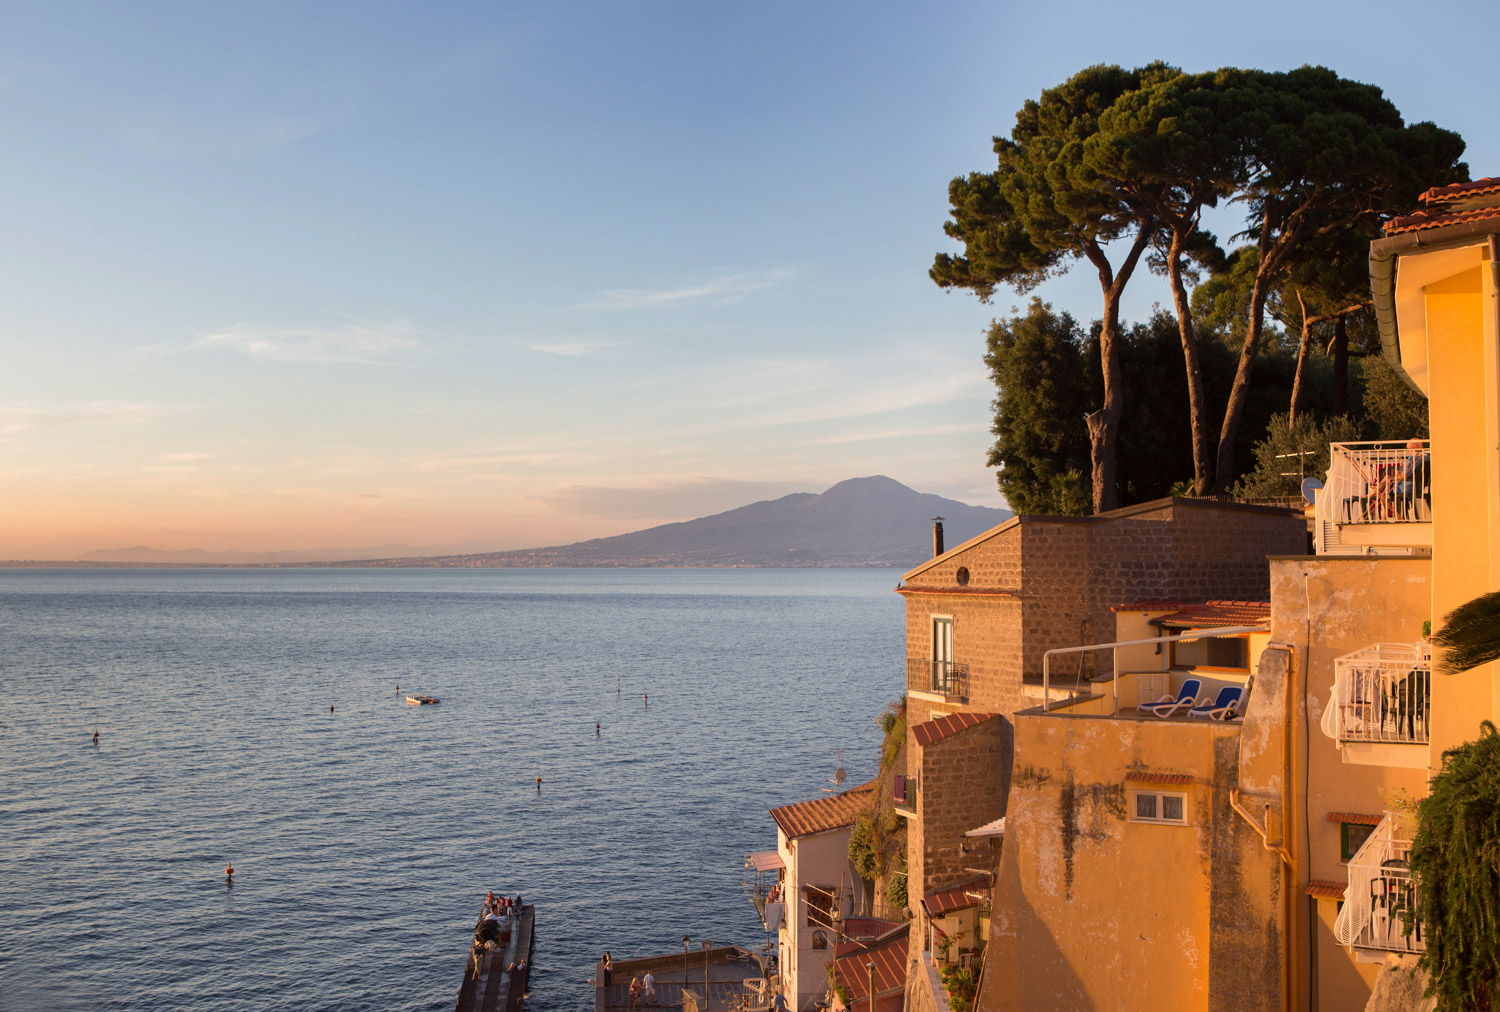 Clear views of Mount Vesuvius from the marina